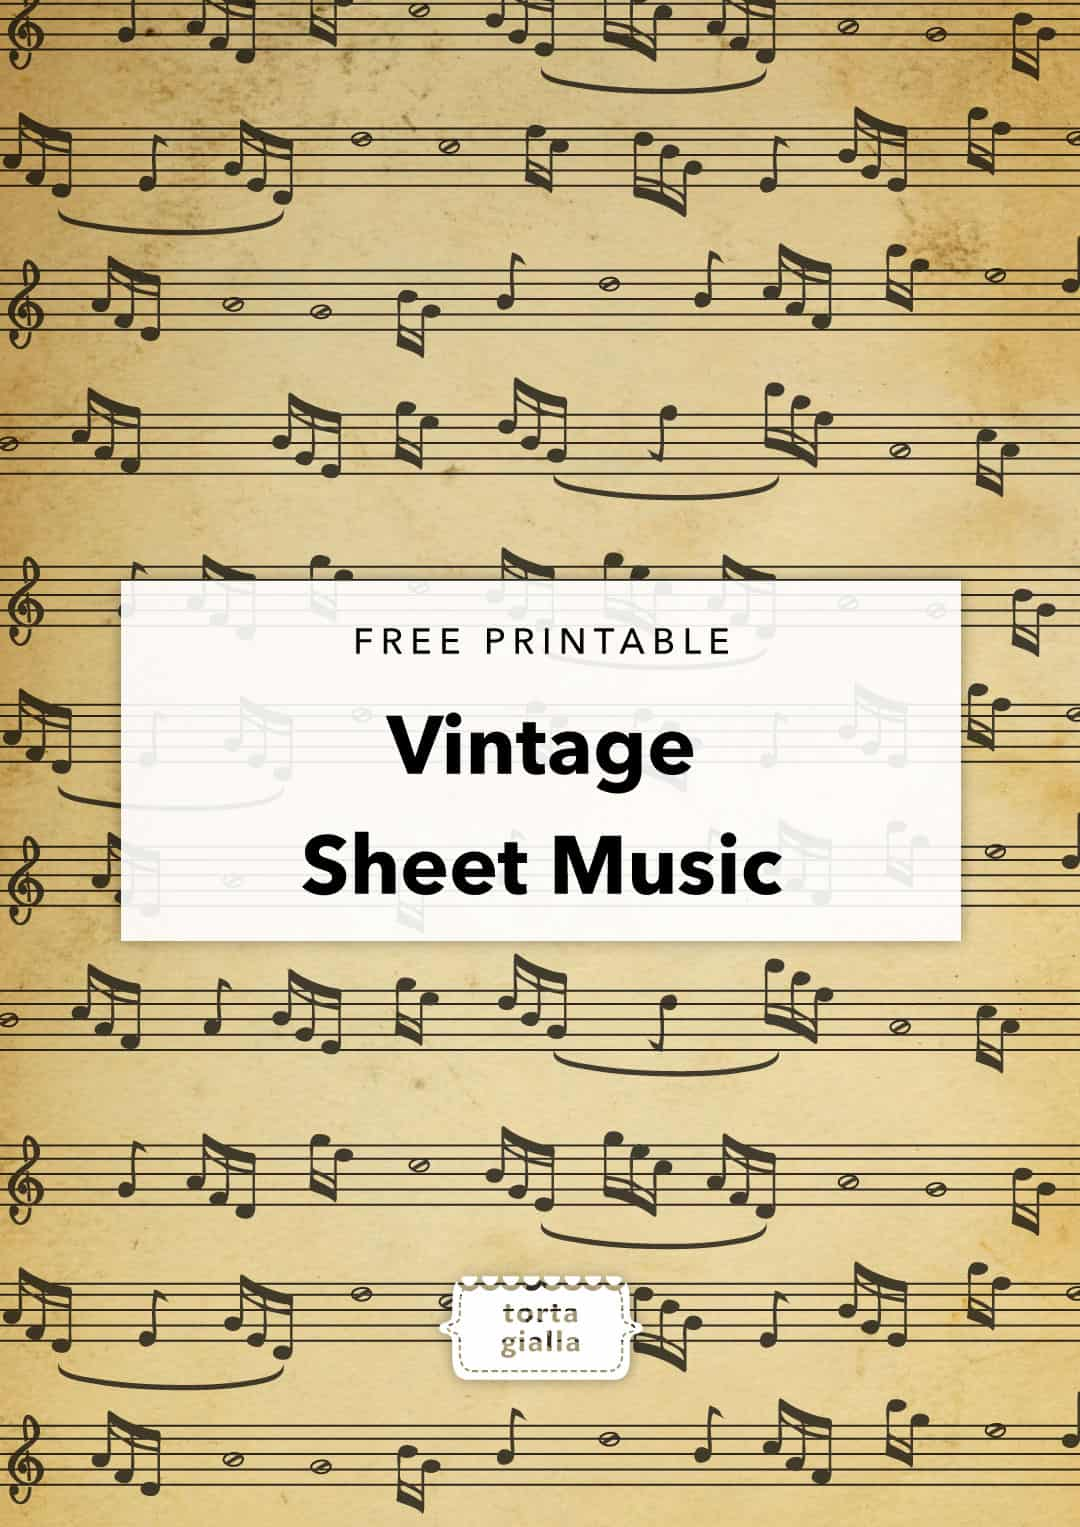 picture relating to Free Vintage Printable known as Absolutely free Printable Common Sheet Audio tortagialla